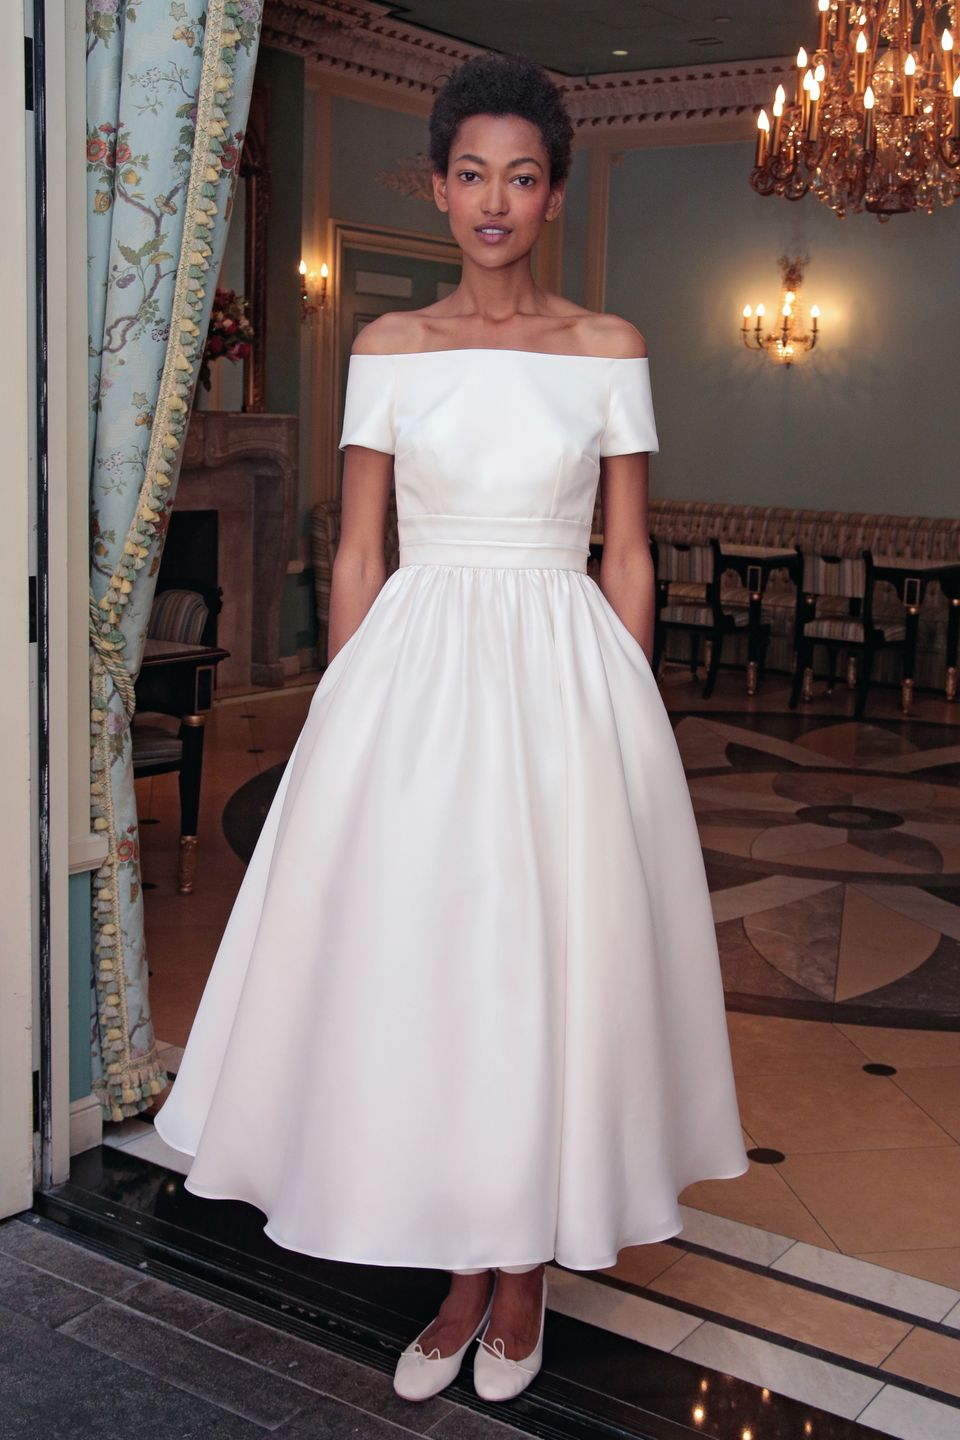 24 Wedding Dresses With Pockets For The Effortlessly Cool Bride